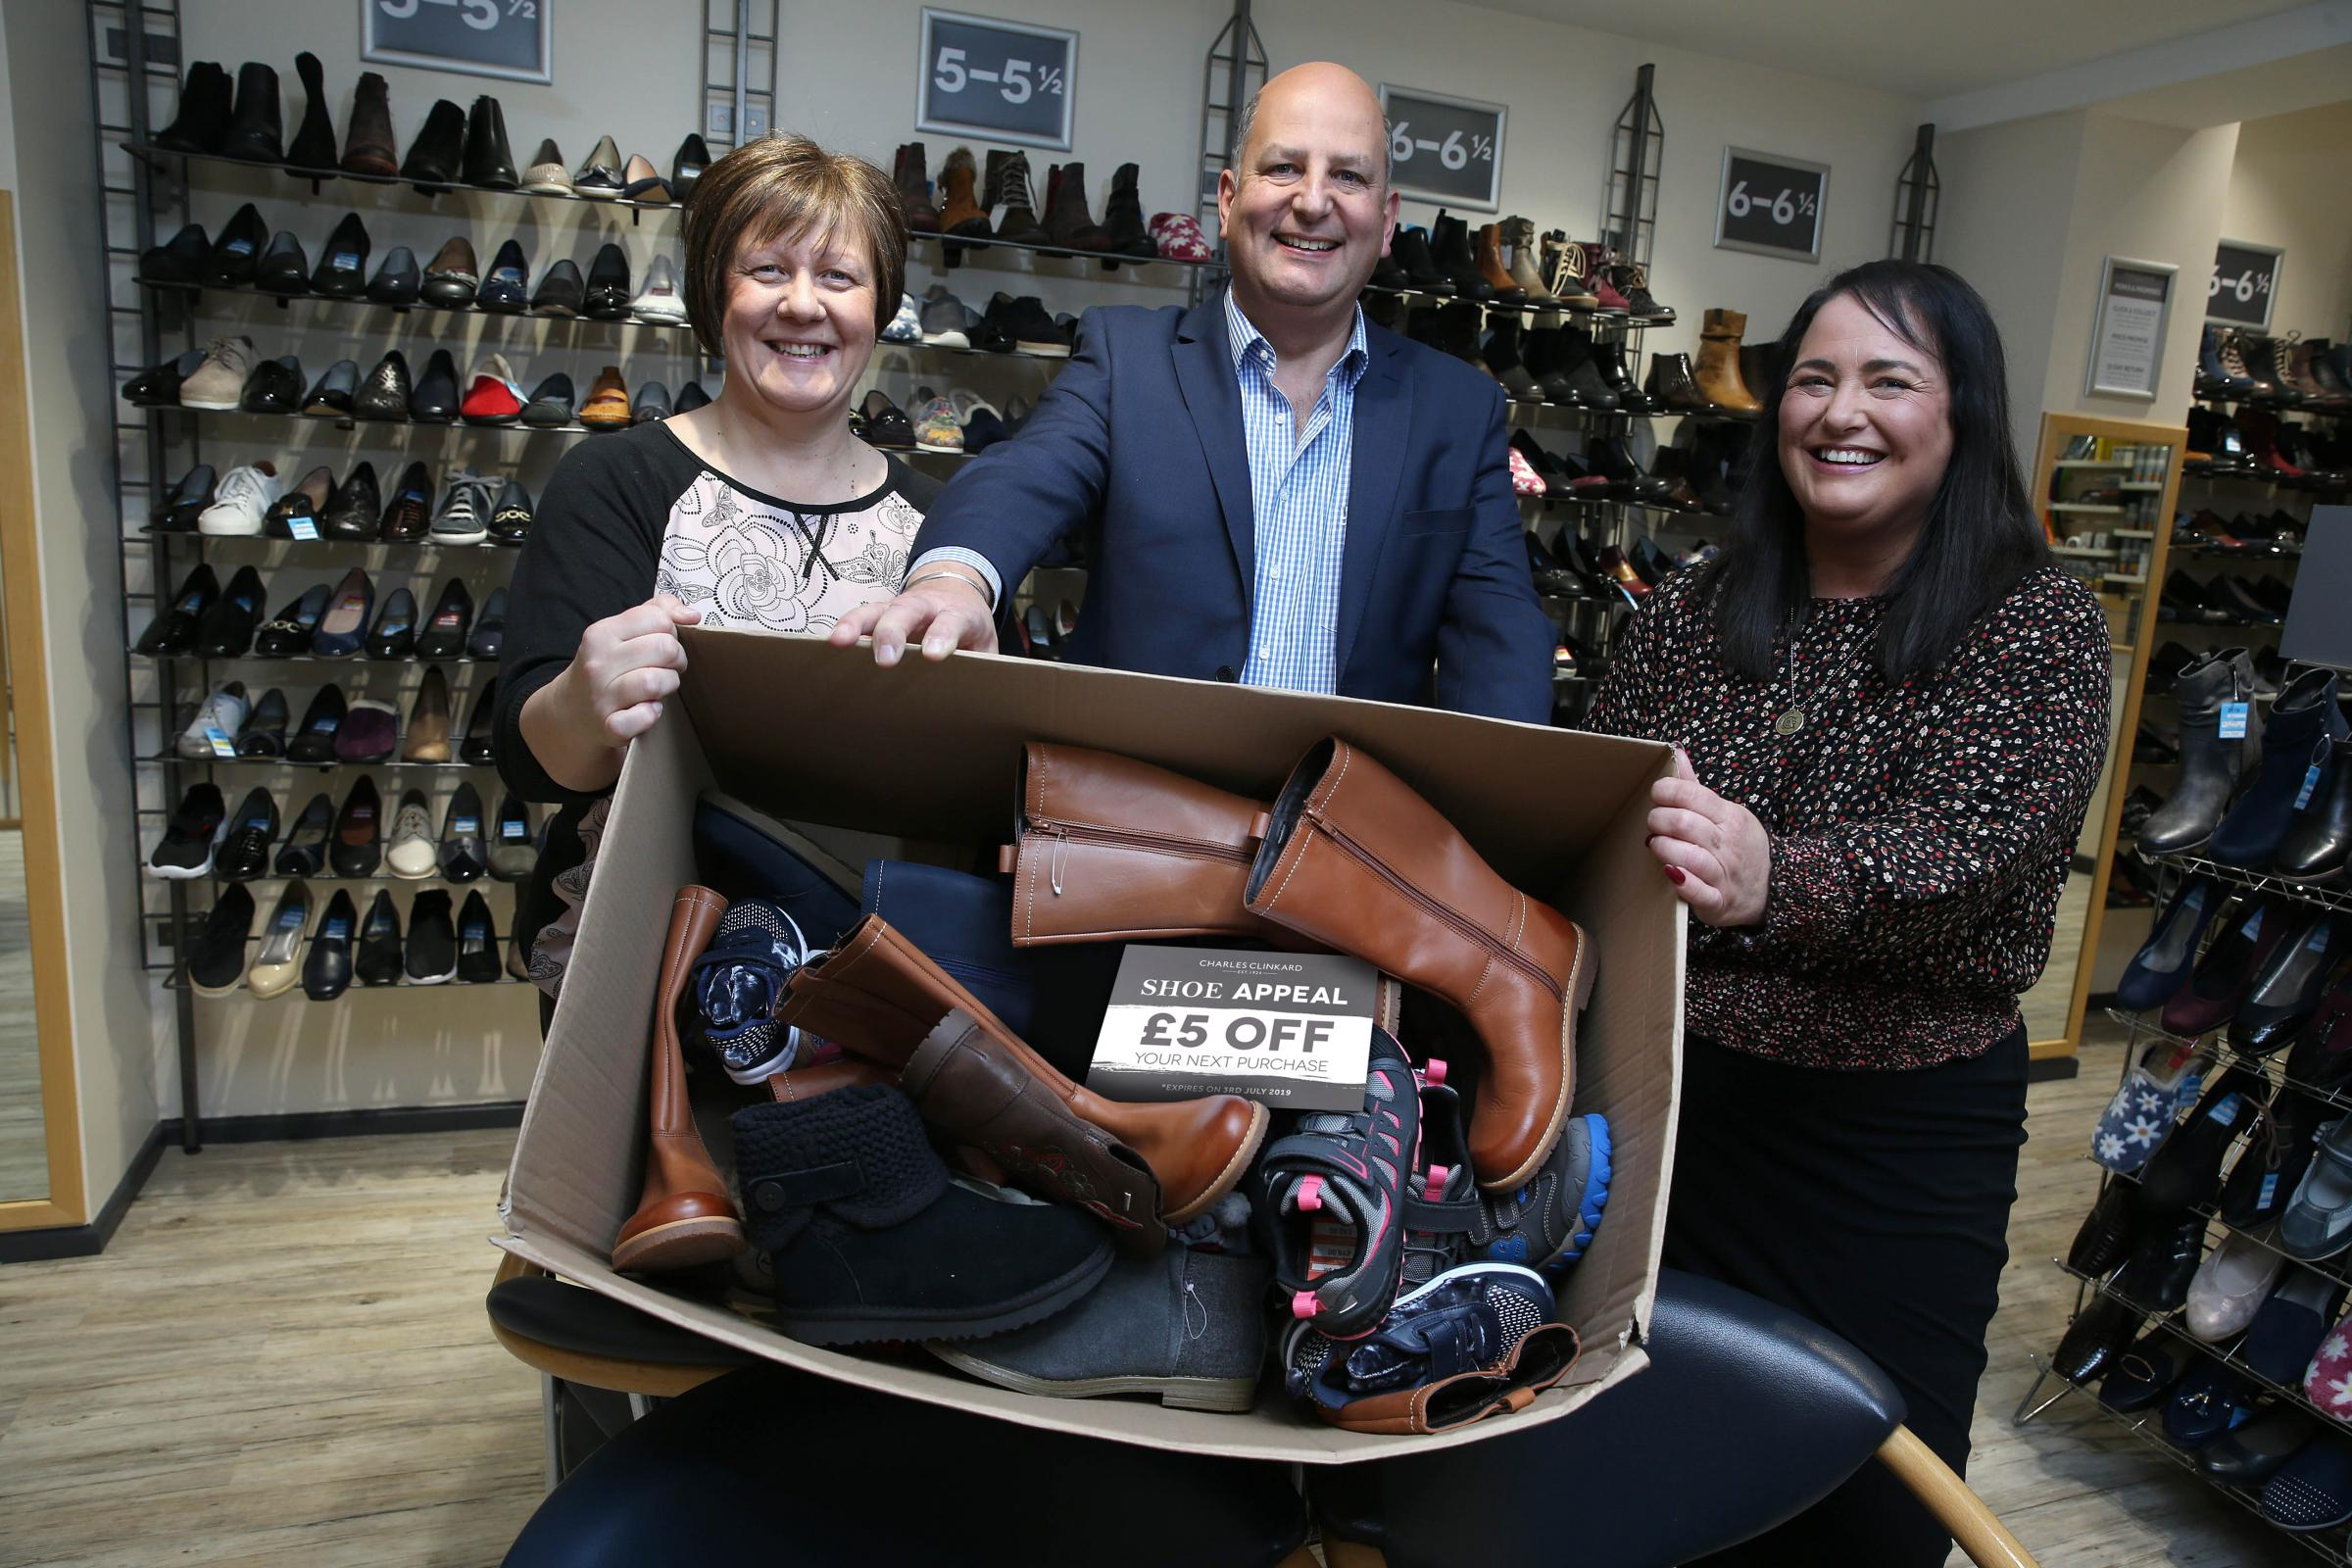 Teesside Philanthropic Foundation's Diane Williamson, left, with Charles Clinkard and store manager Gina Ditchburn, right